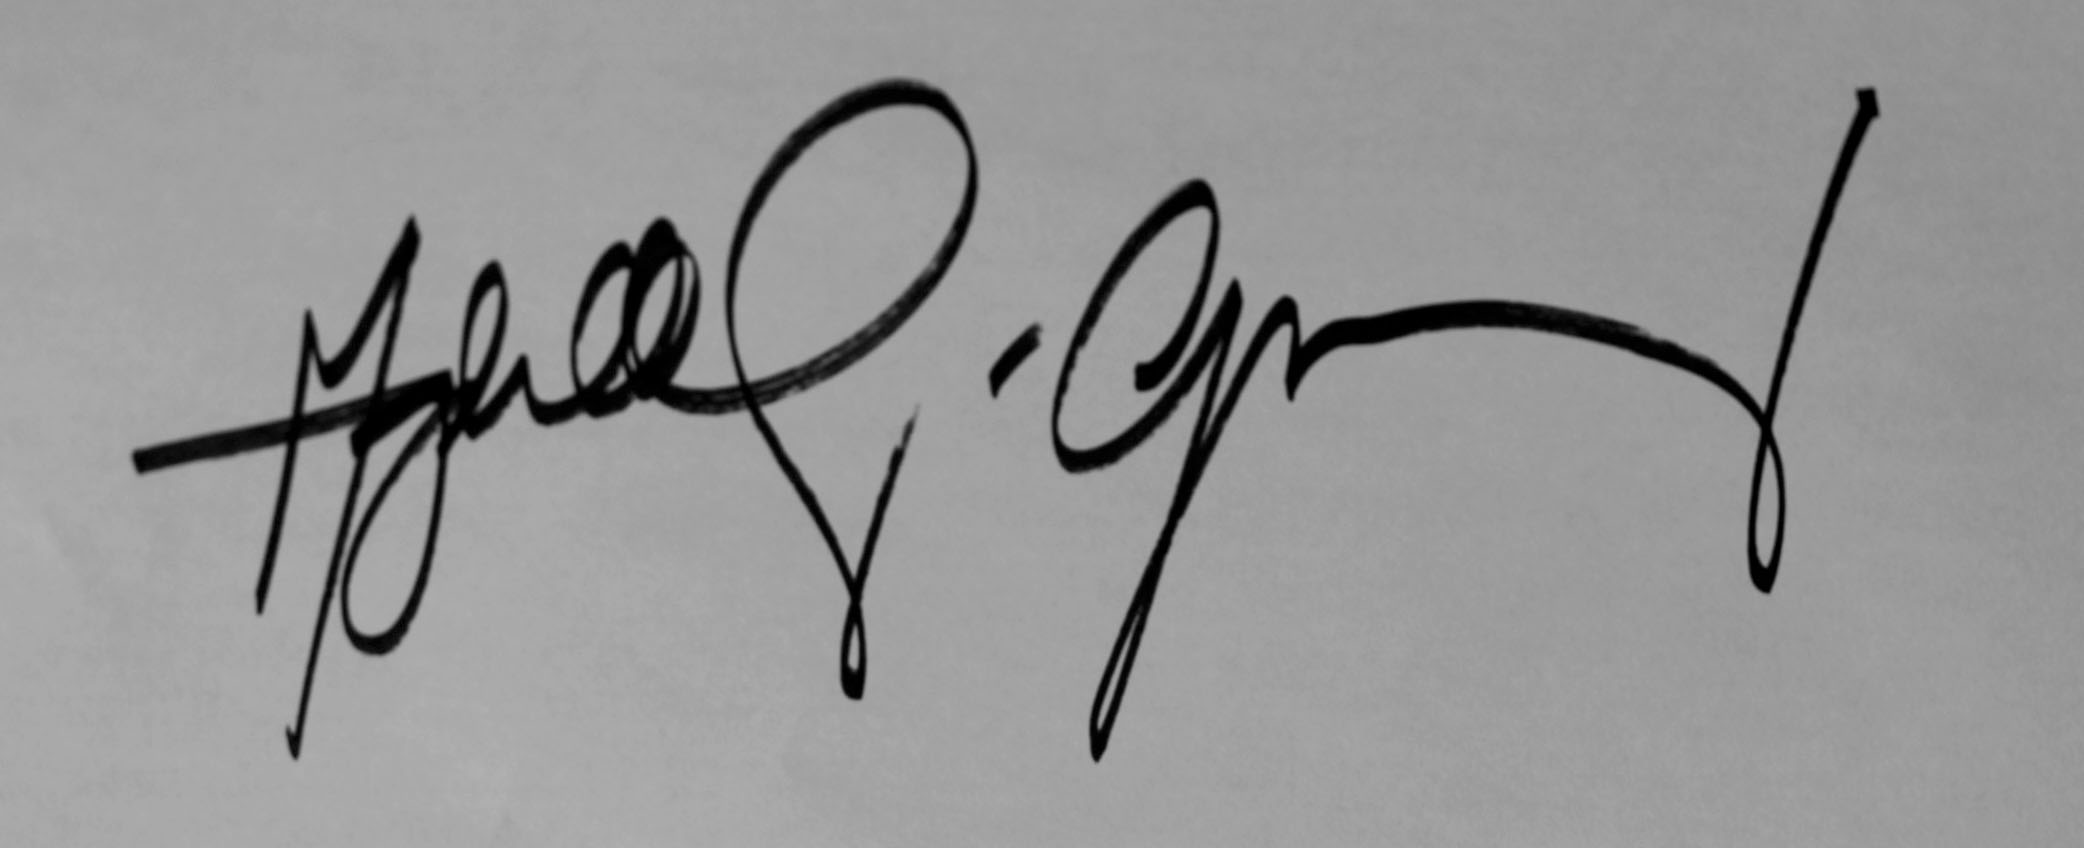 Marge Dela Cruz-Gomez Signature